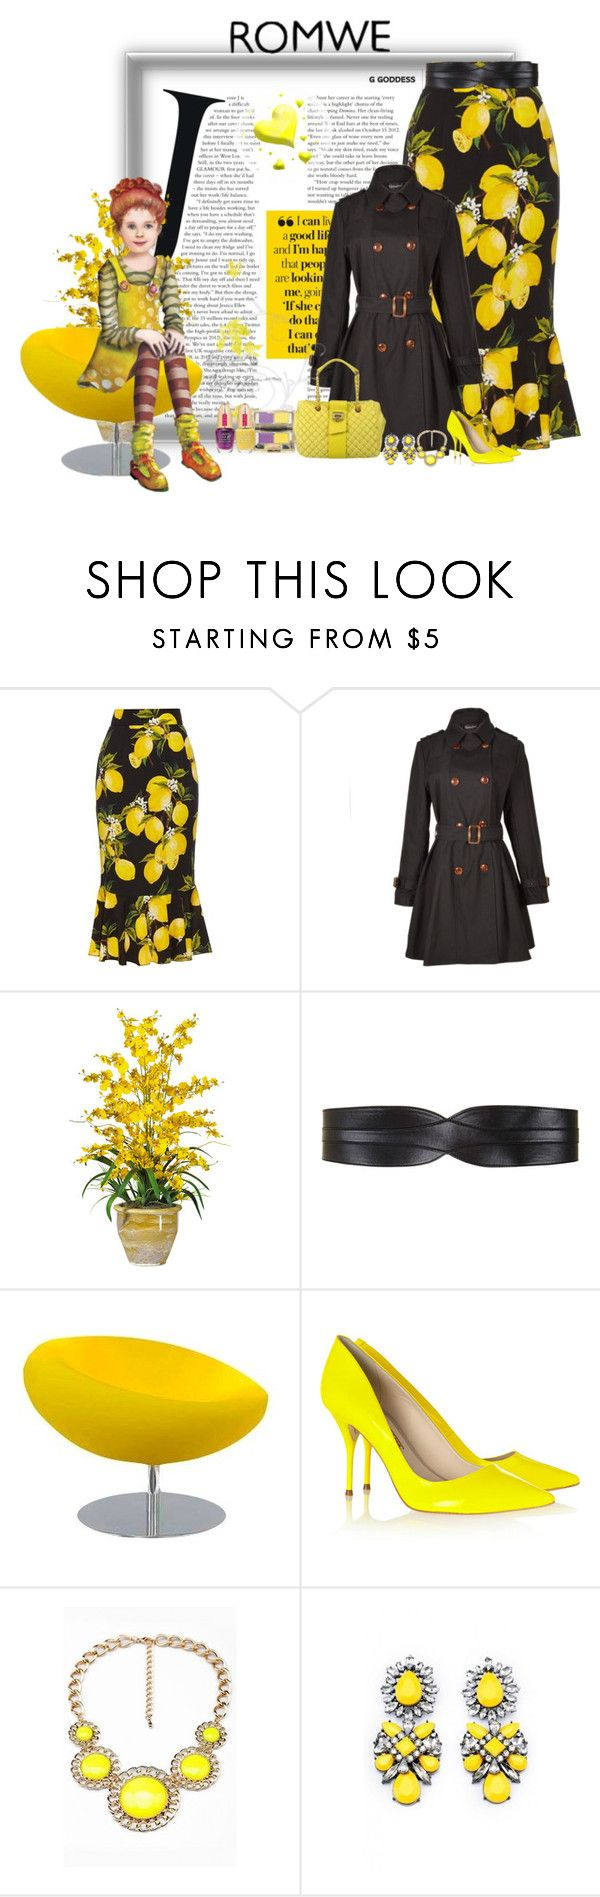 """rosangela"" by jwrosangelasilva ❤ liked on Polyvore featuring Dolce&Gabbana, Relaxfeel, Nearly Natural, BCBGMAXAZRIA, Tisettanta, Sophia Webster, Moschino and Pupa"